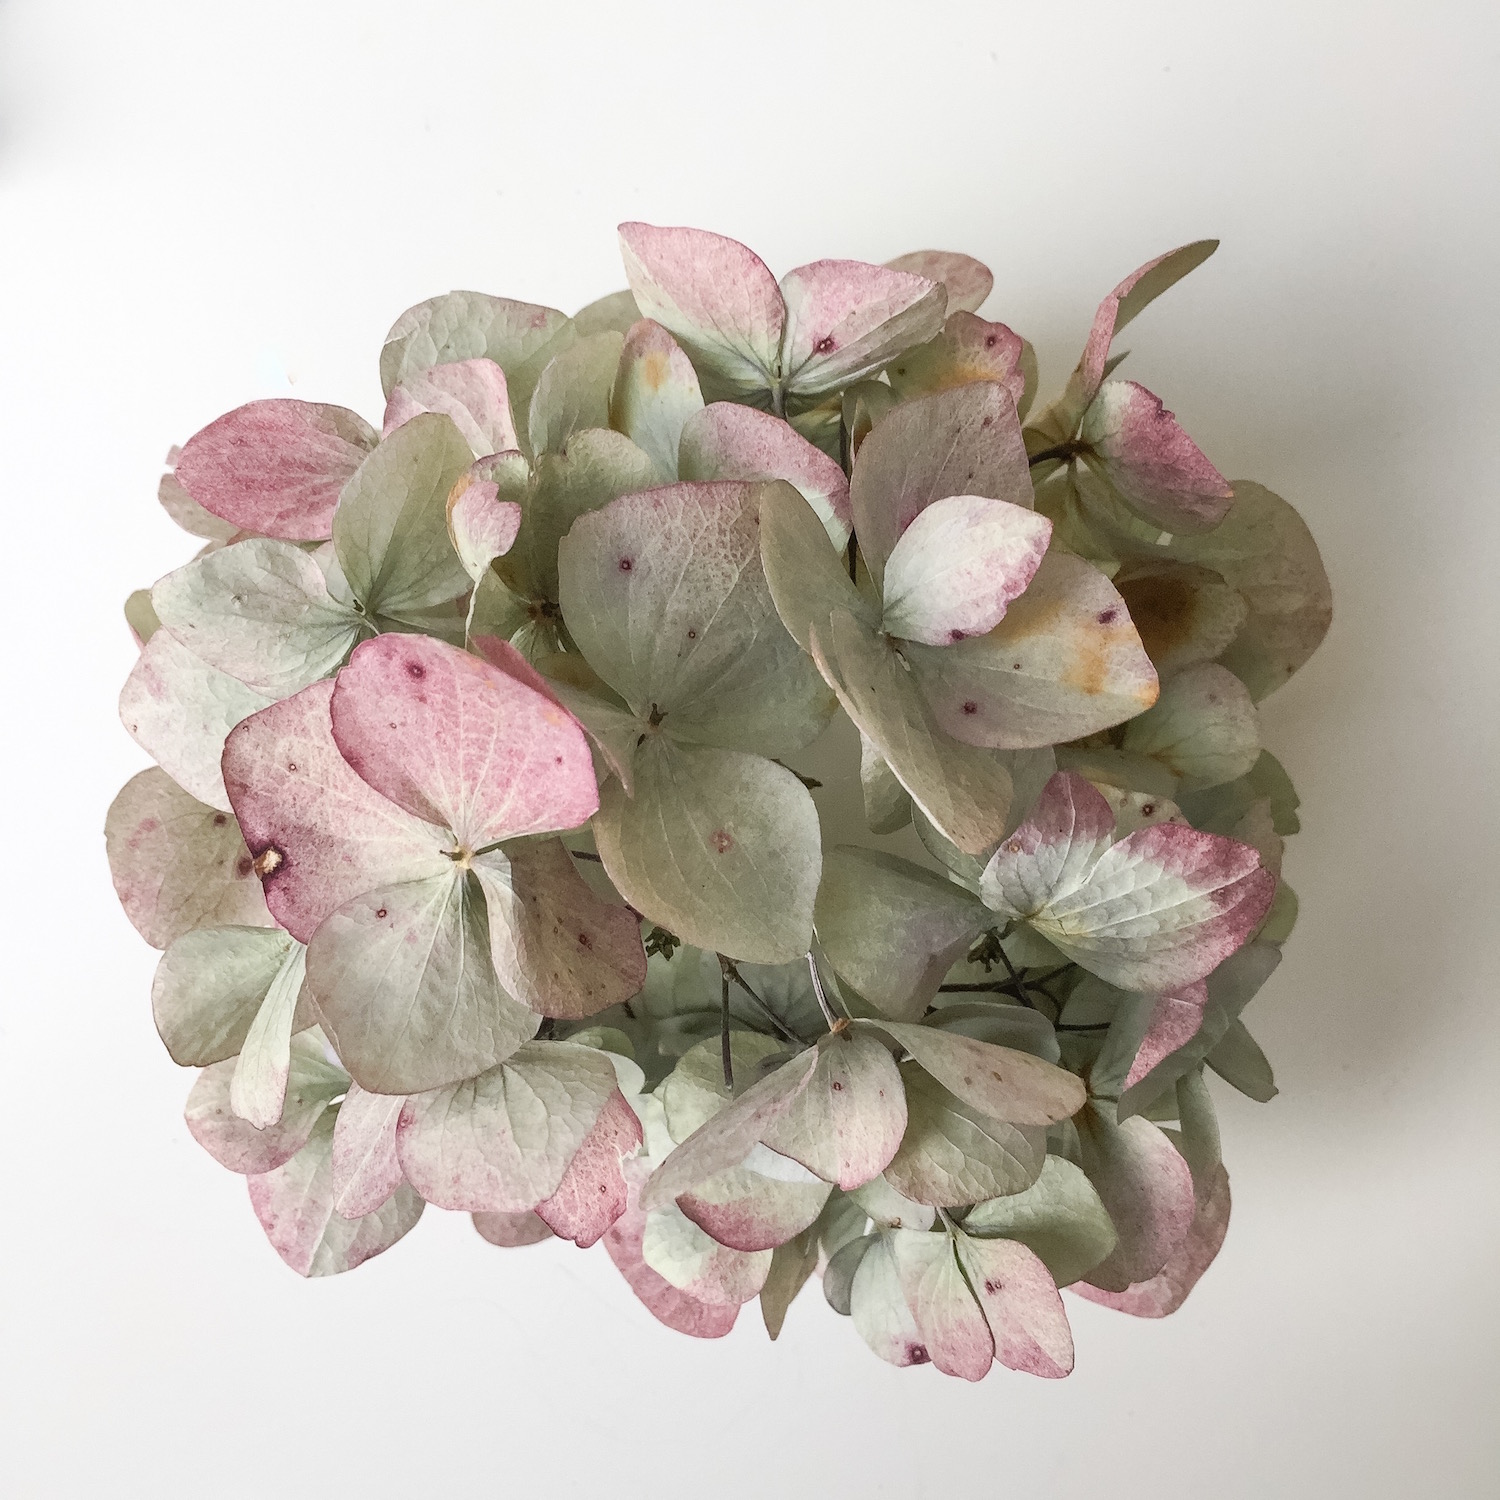 Faded blue hydrangea. Inspiration for the Autumn Winter Collection. Photo by Nina Parker